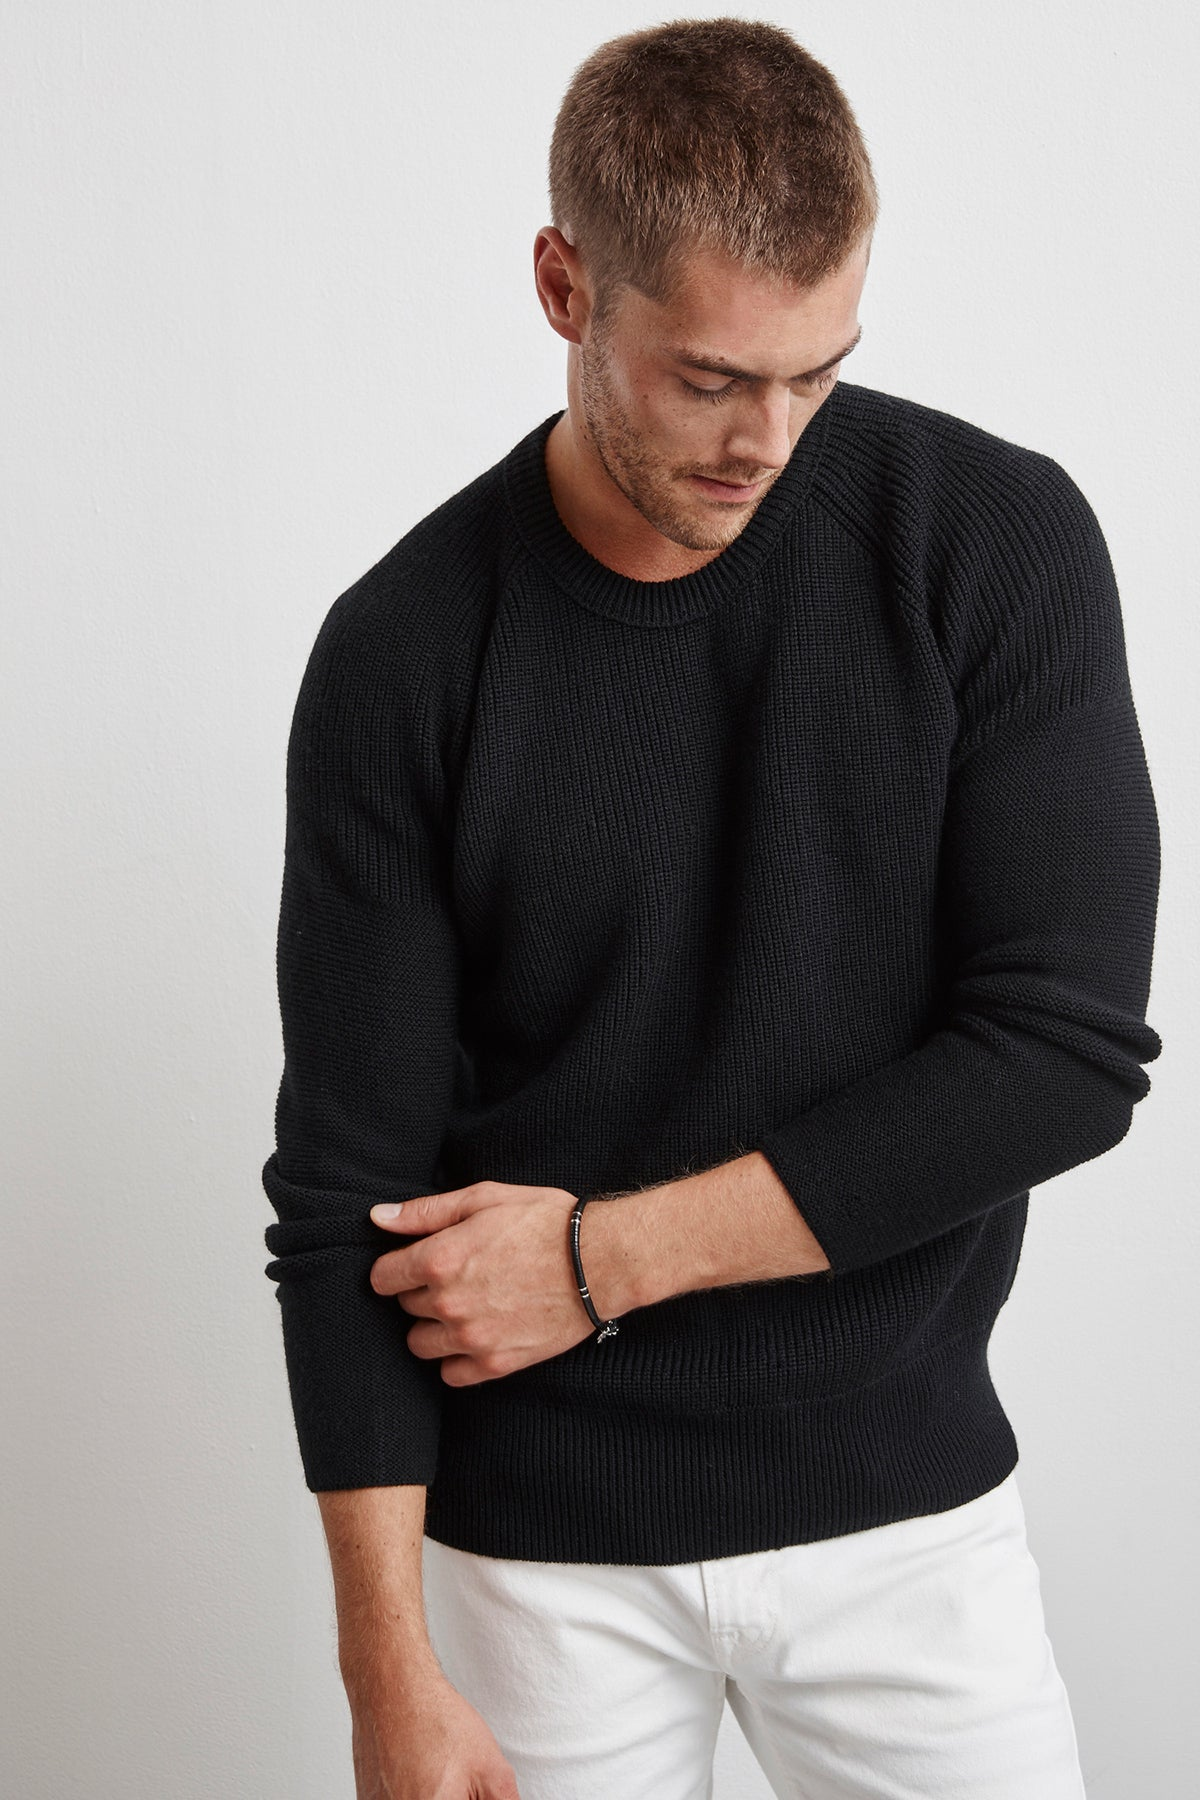 ELVIN ENGINEERED STITCHES RAGLAN SWEATER